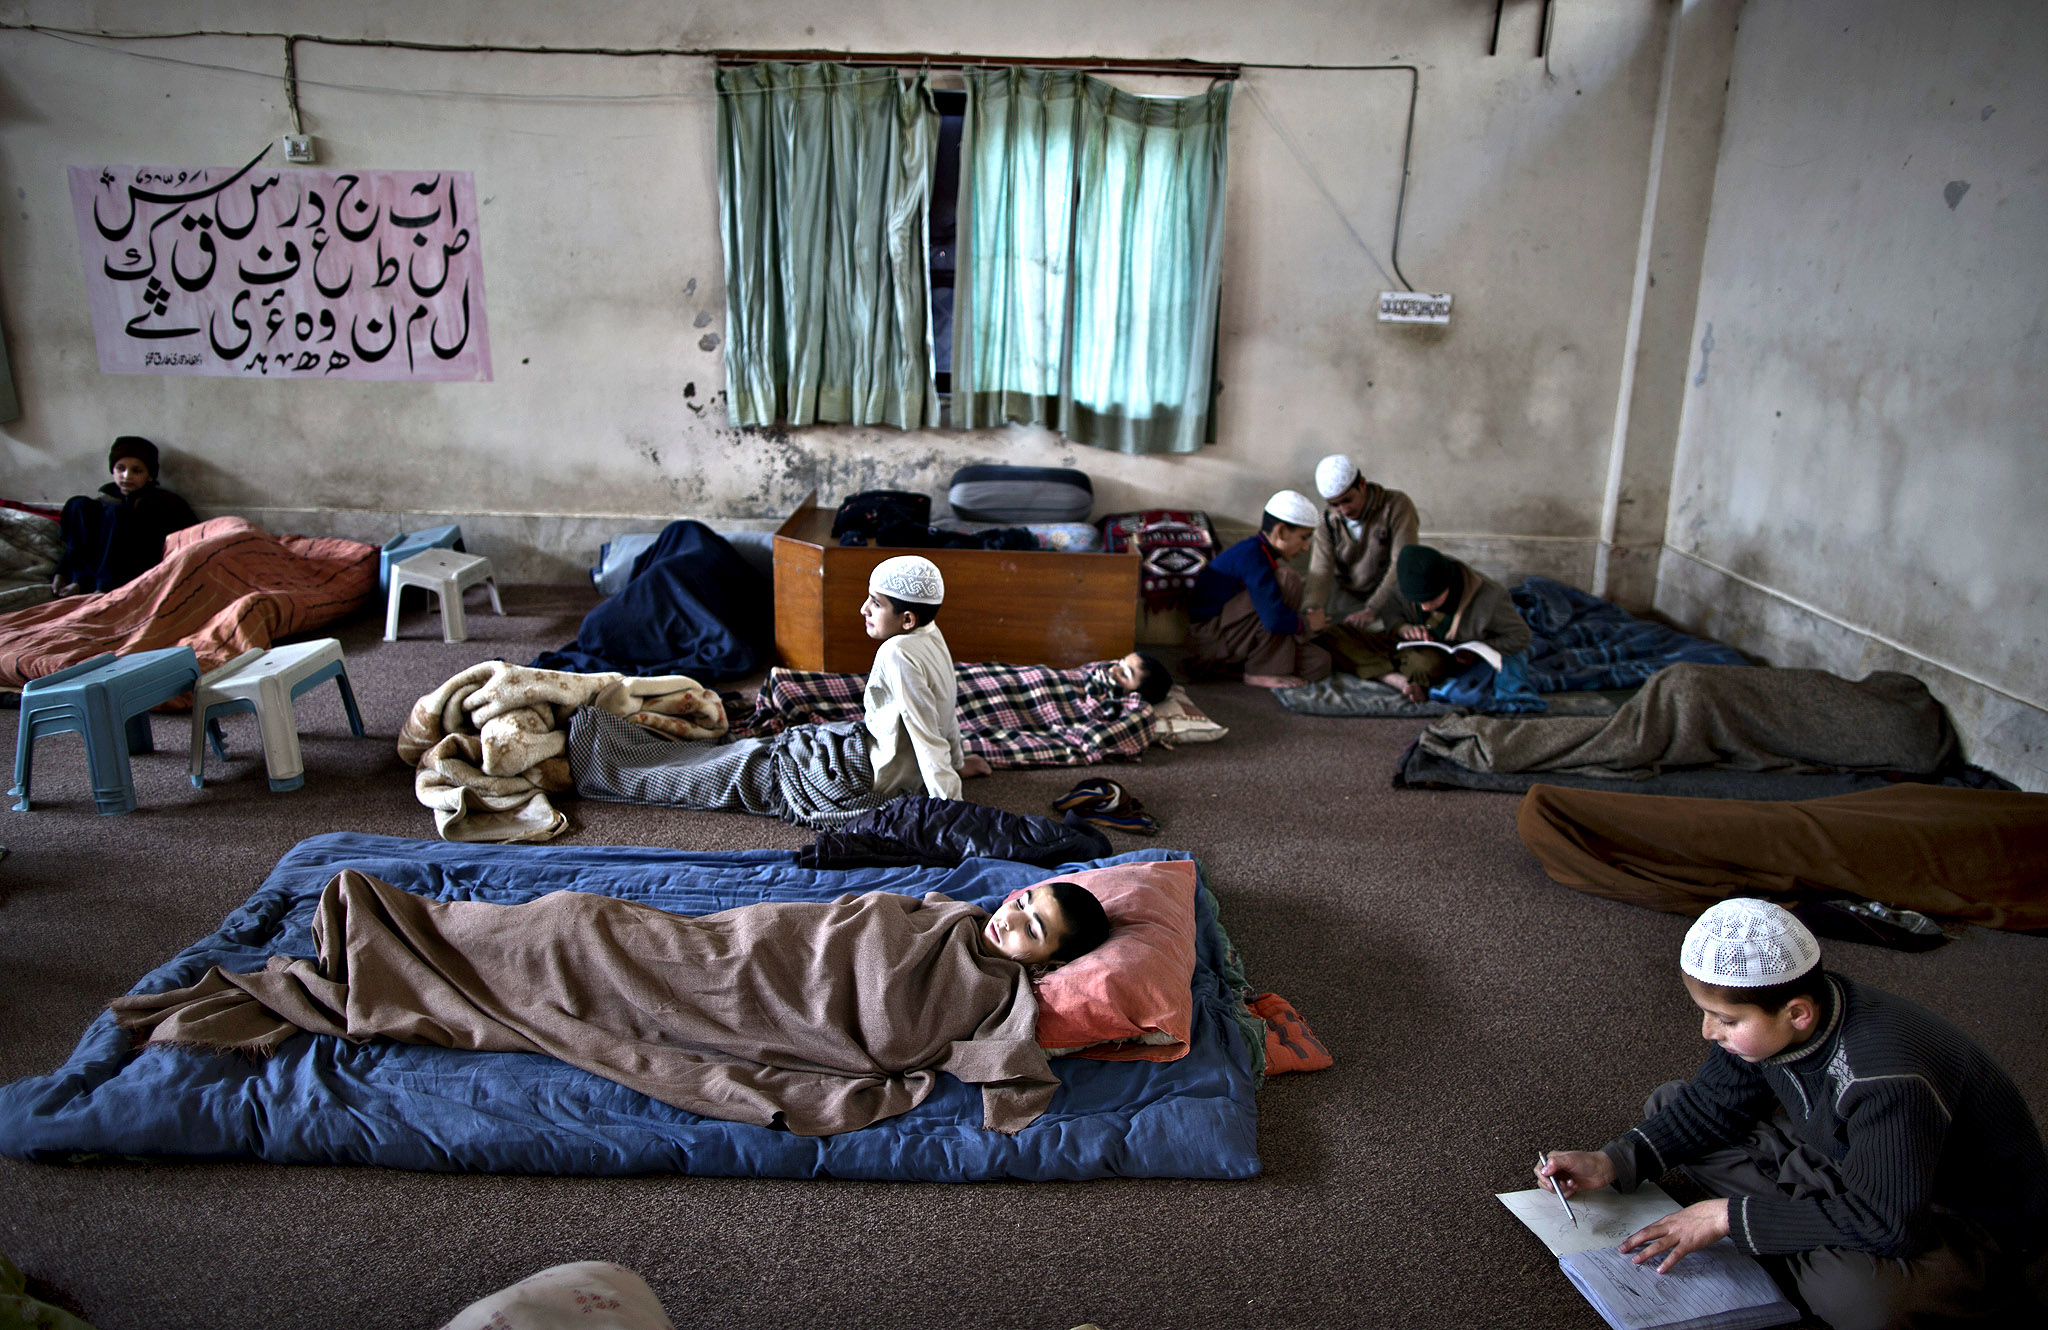 Pakistani students of a madrassa, or Islamic school, some sleeping while others study, in a Mosque in Islamabad, Pakistan, Monday, Feb. 24, 2014. Islamic schools form an important function within the Pakistani educational system, providing for many Pakistanis, the only educational institution they attend.